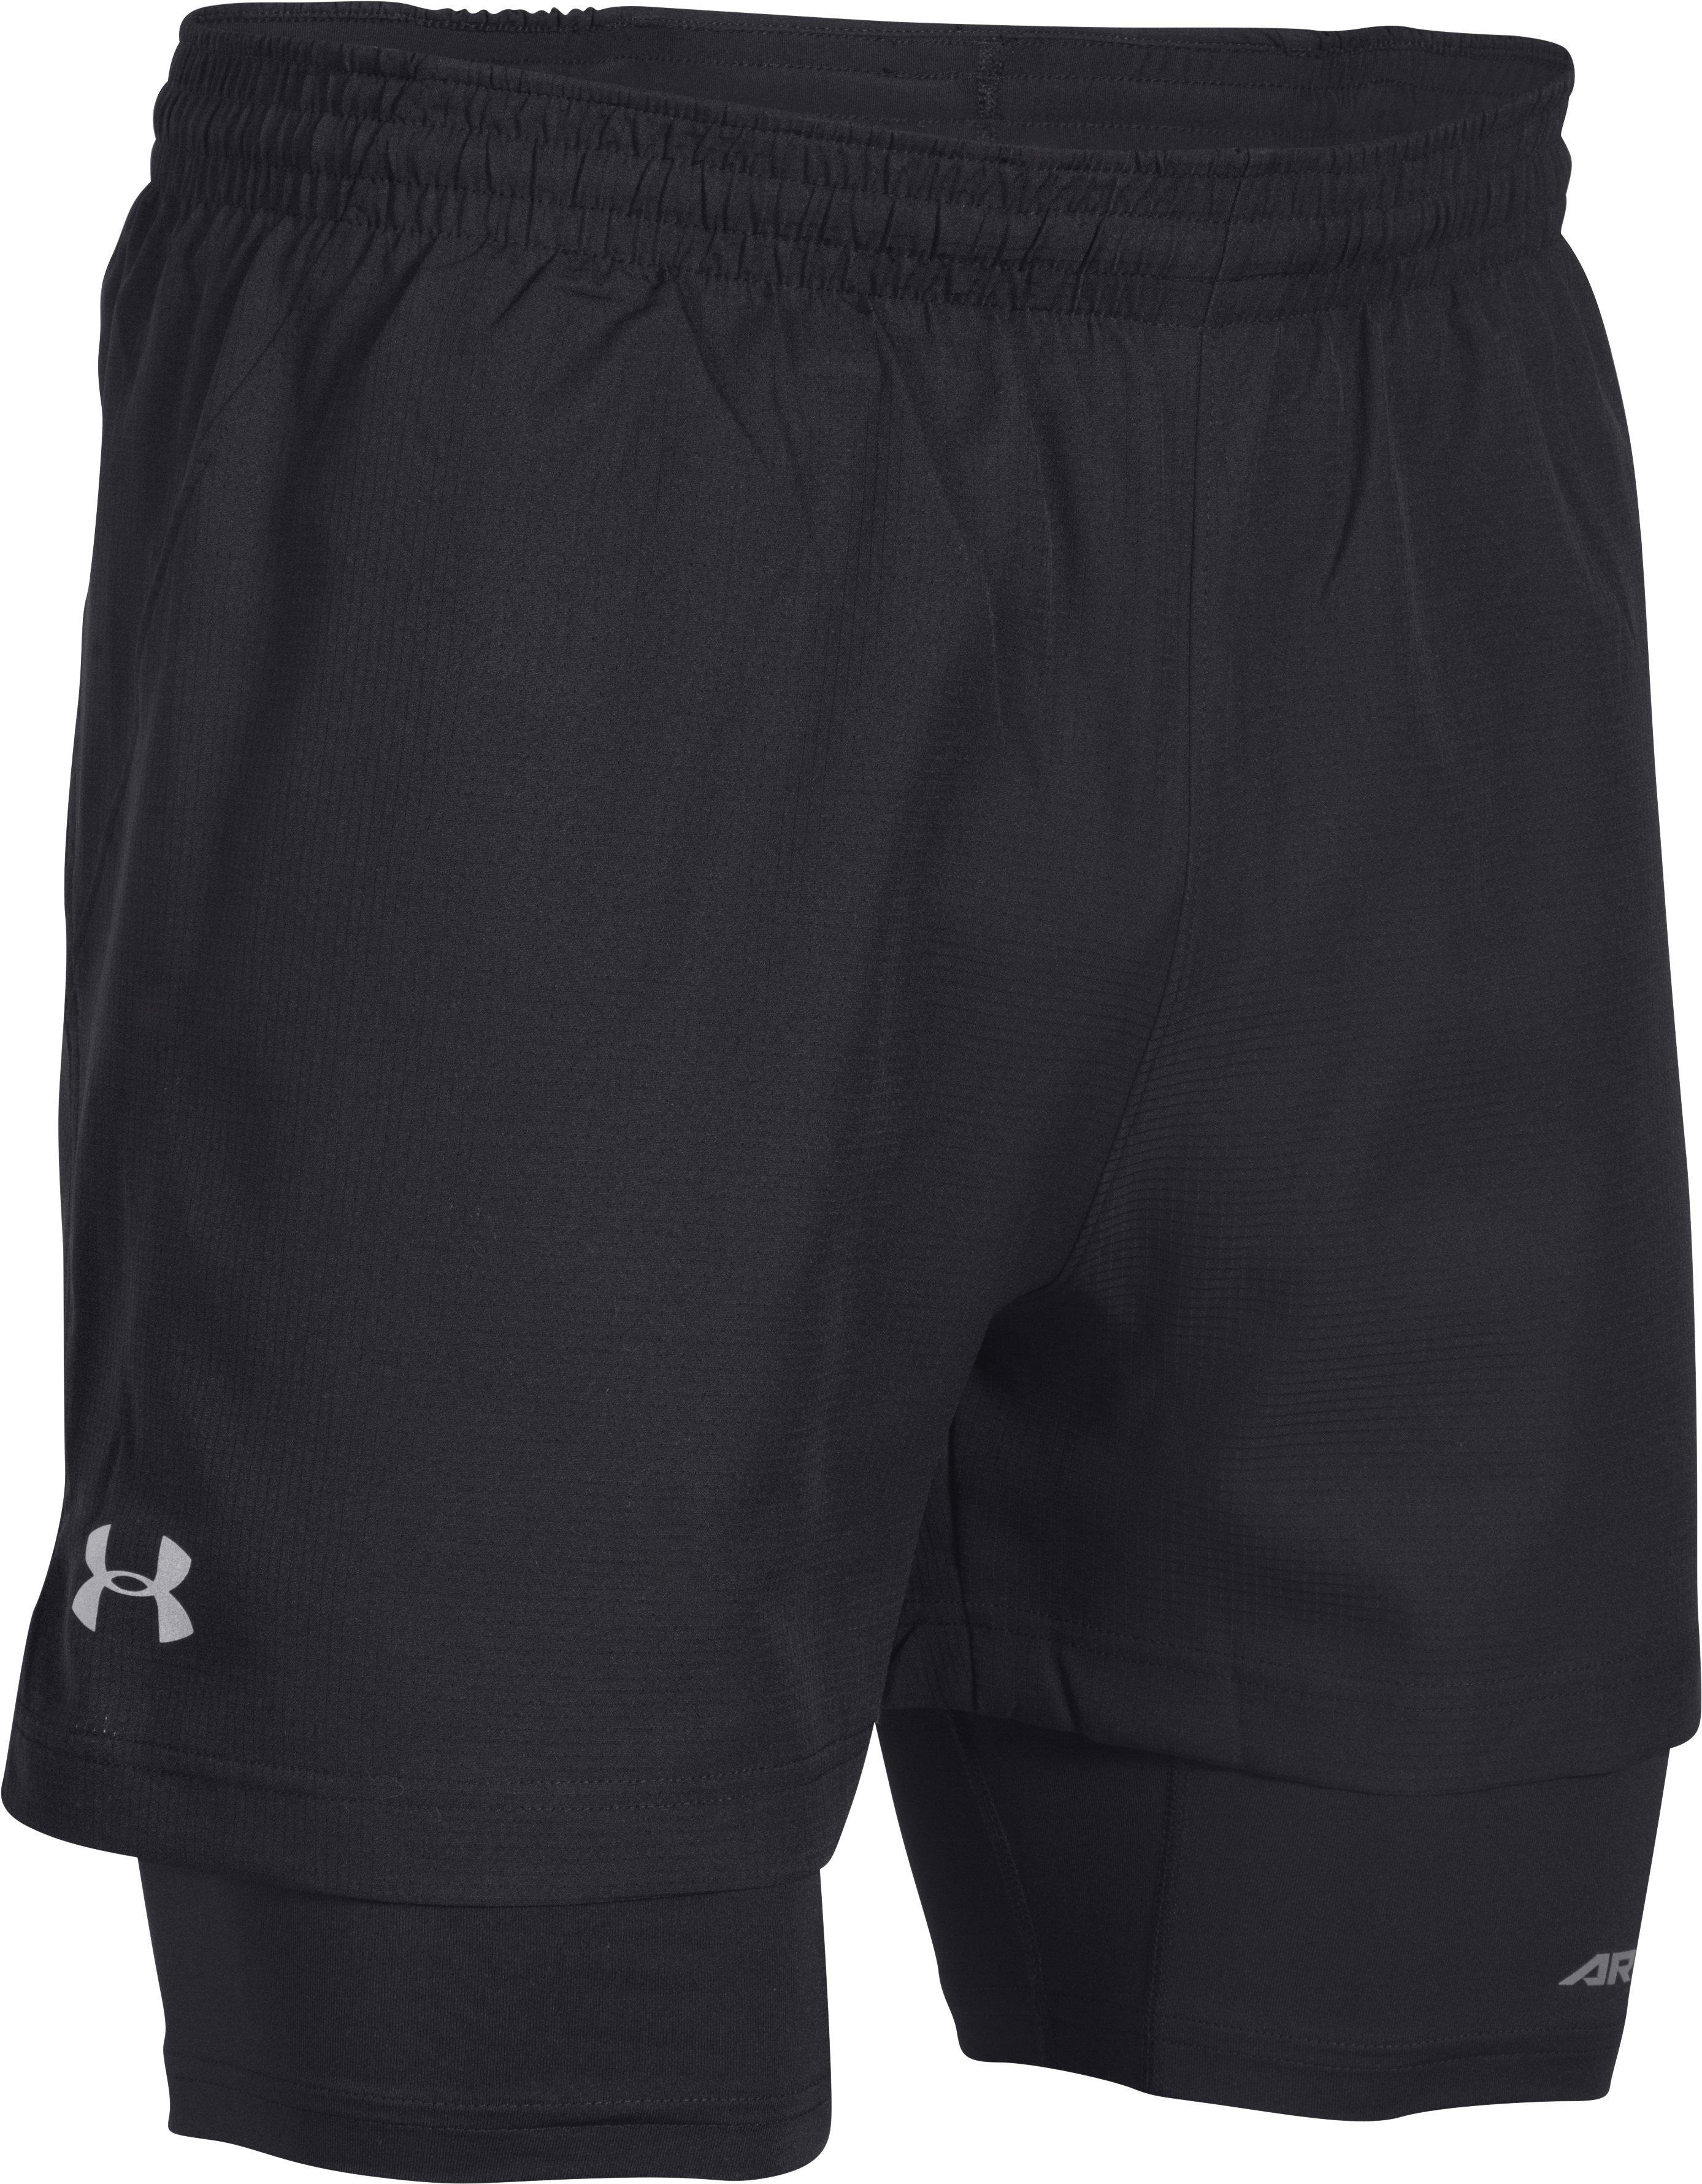 Men's UA Launch Racer 2-in-1 Shorts, Black , undefined